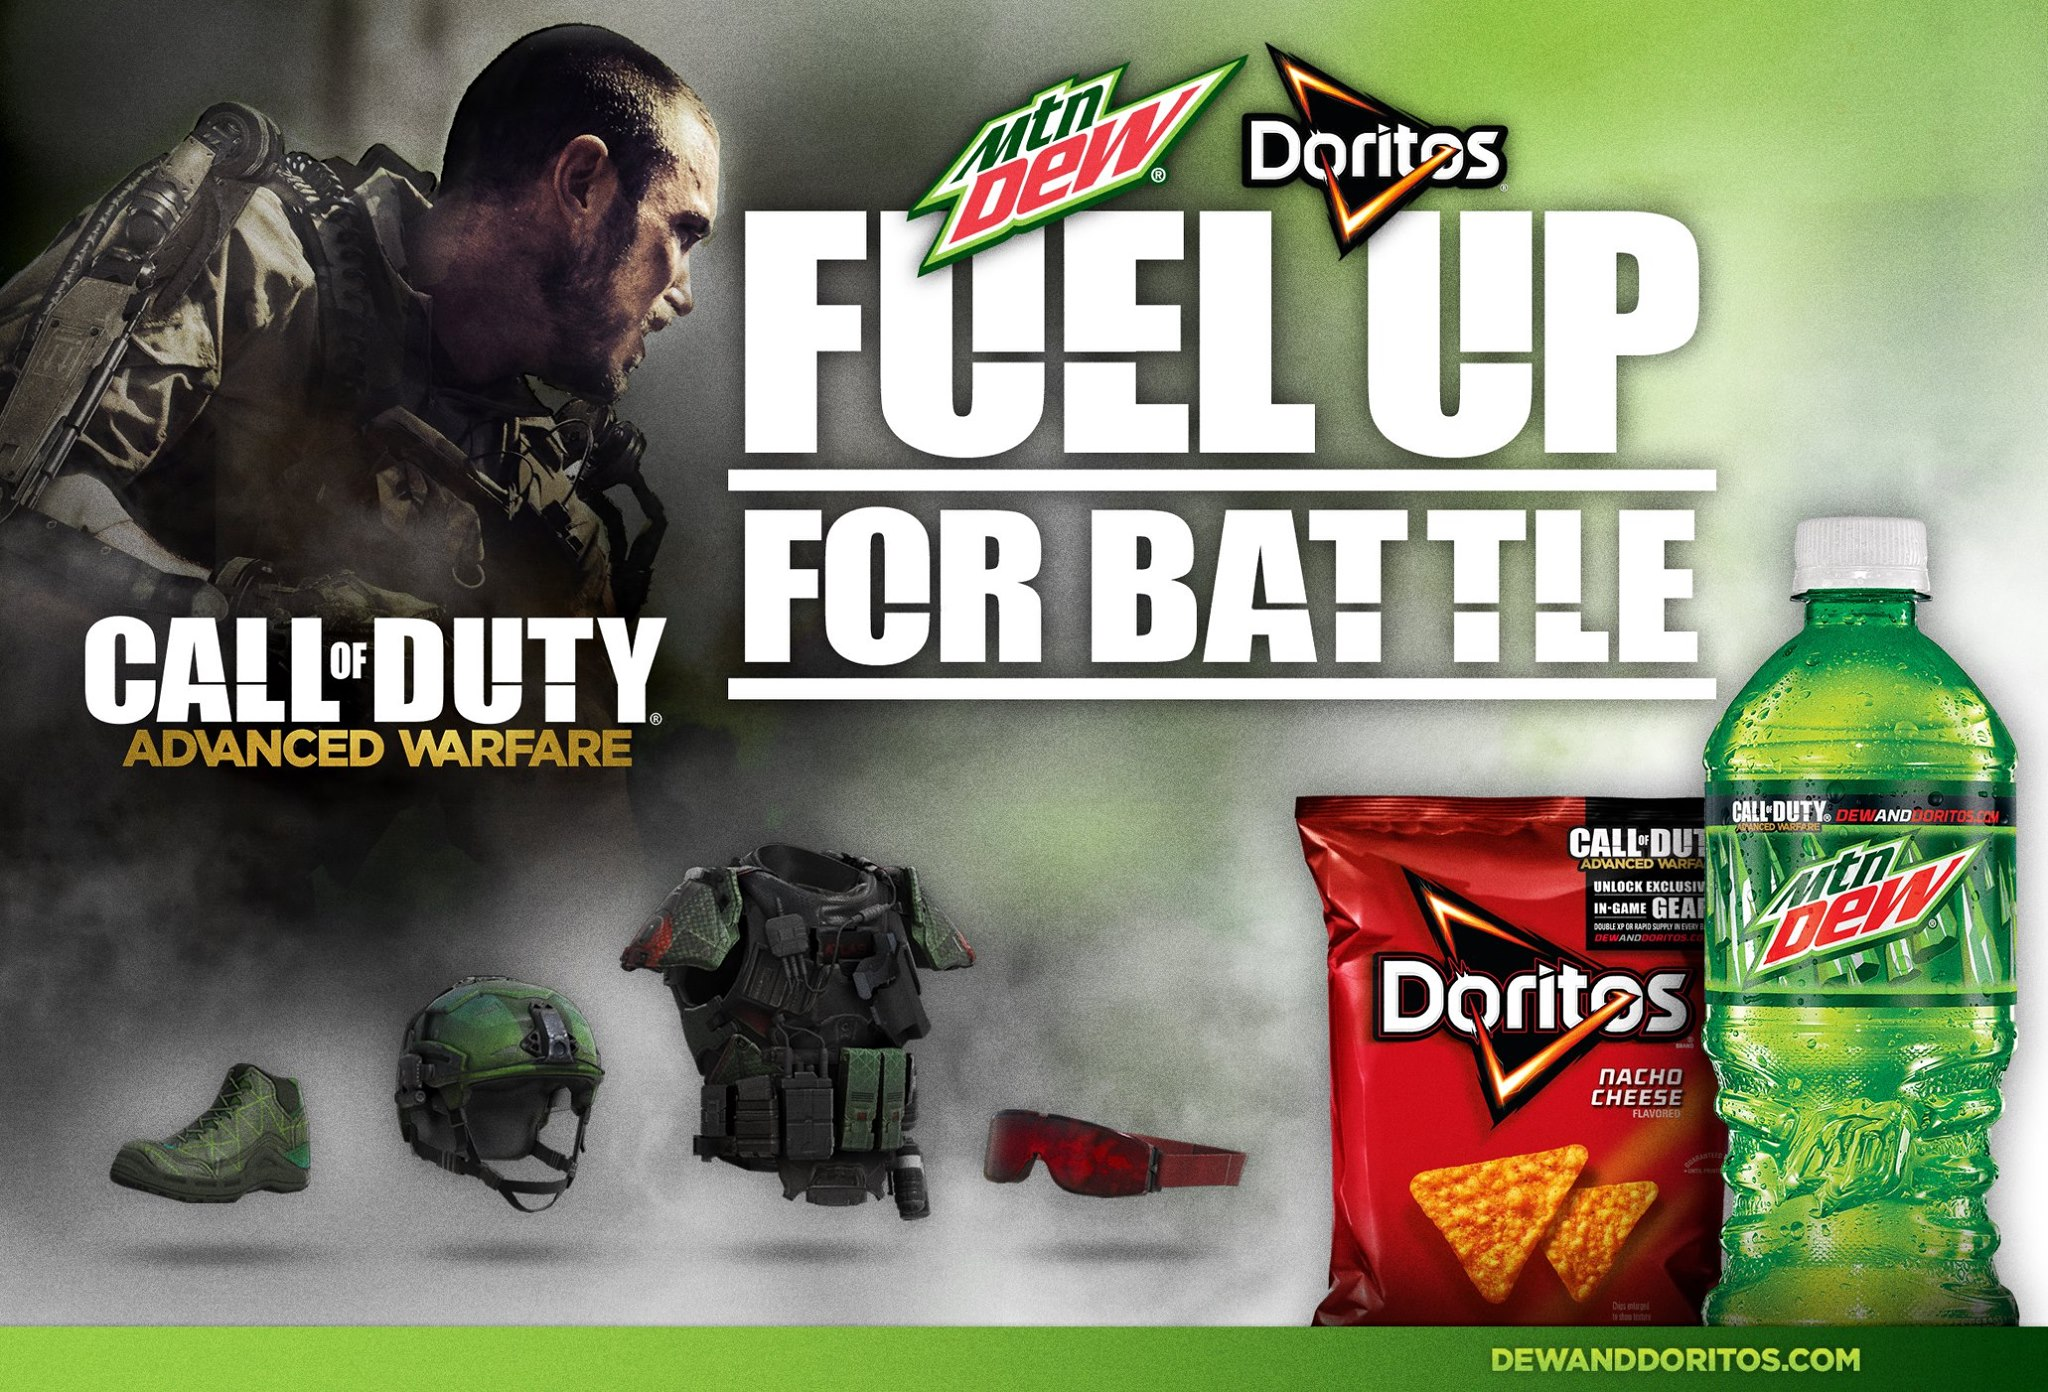 Advanced warfare fuel up for battle dew and doritos usa canadian